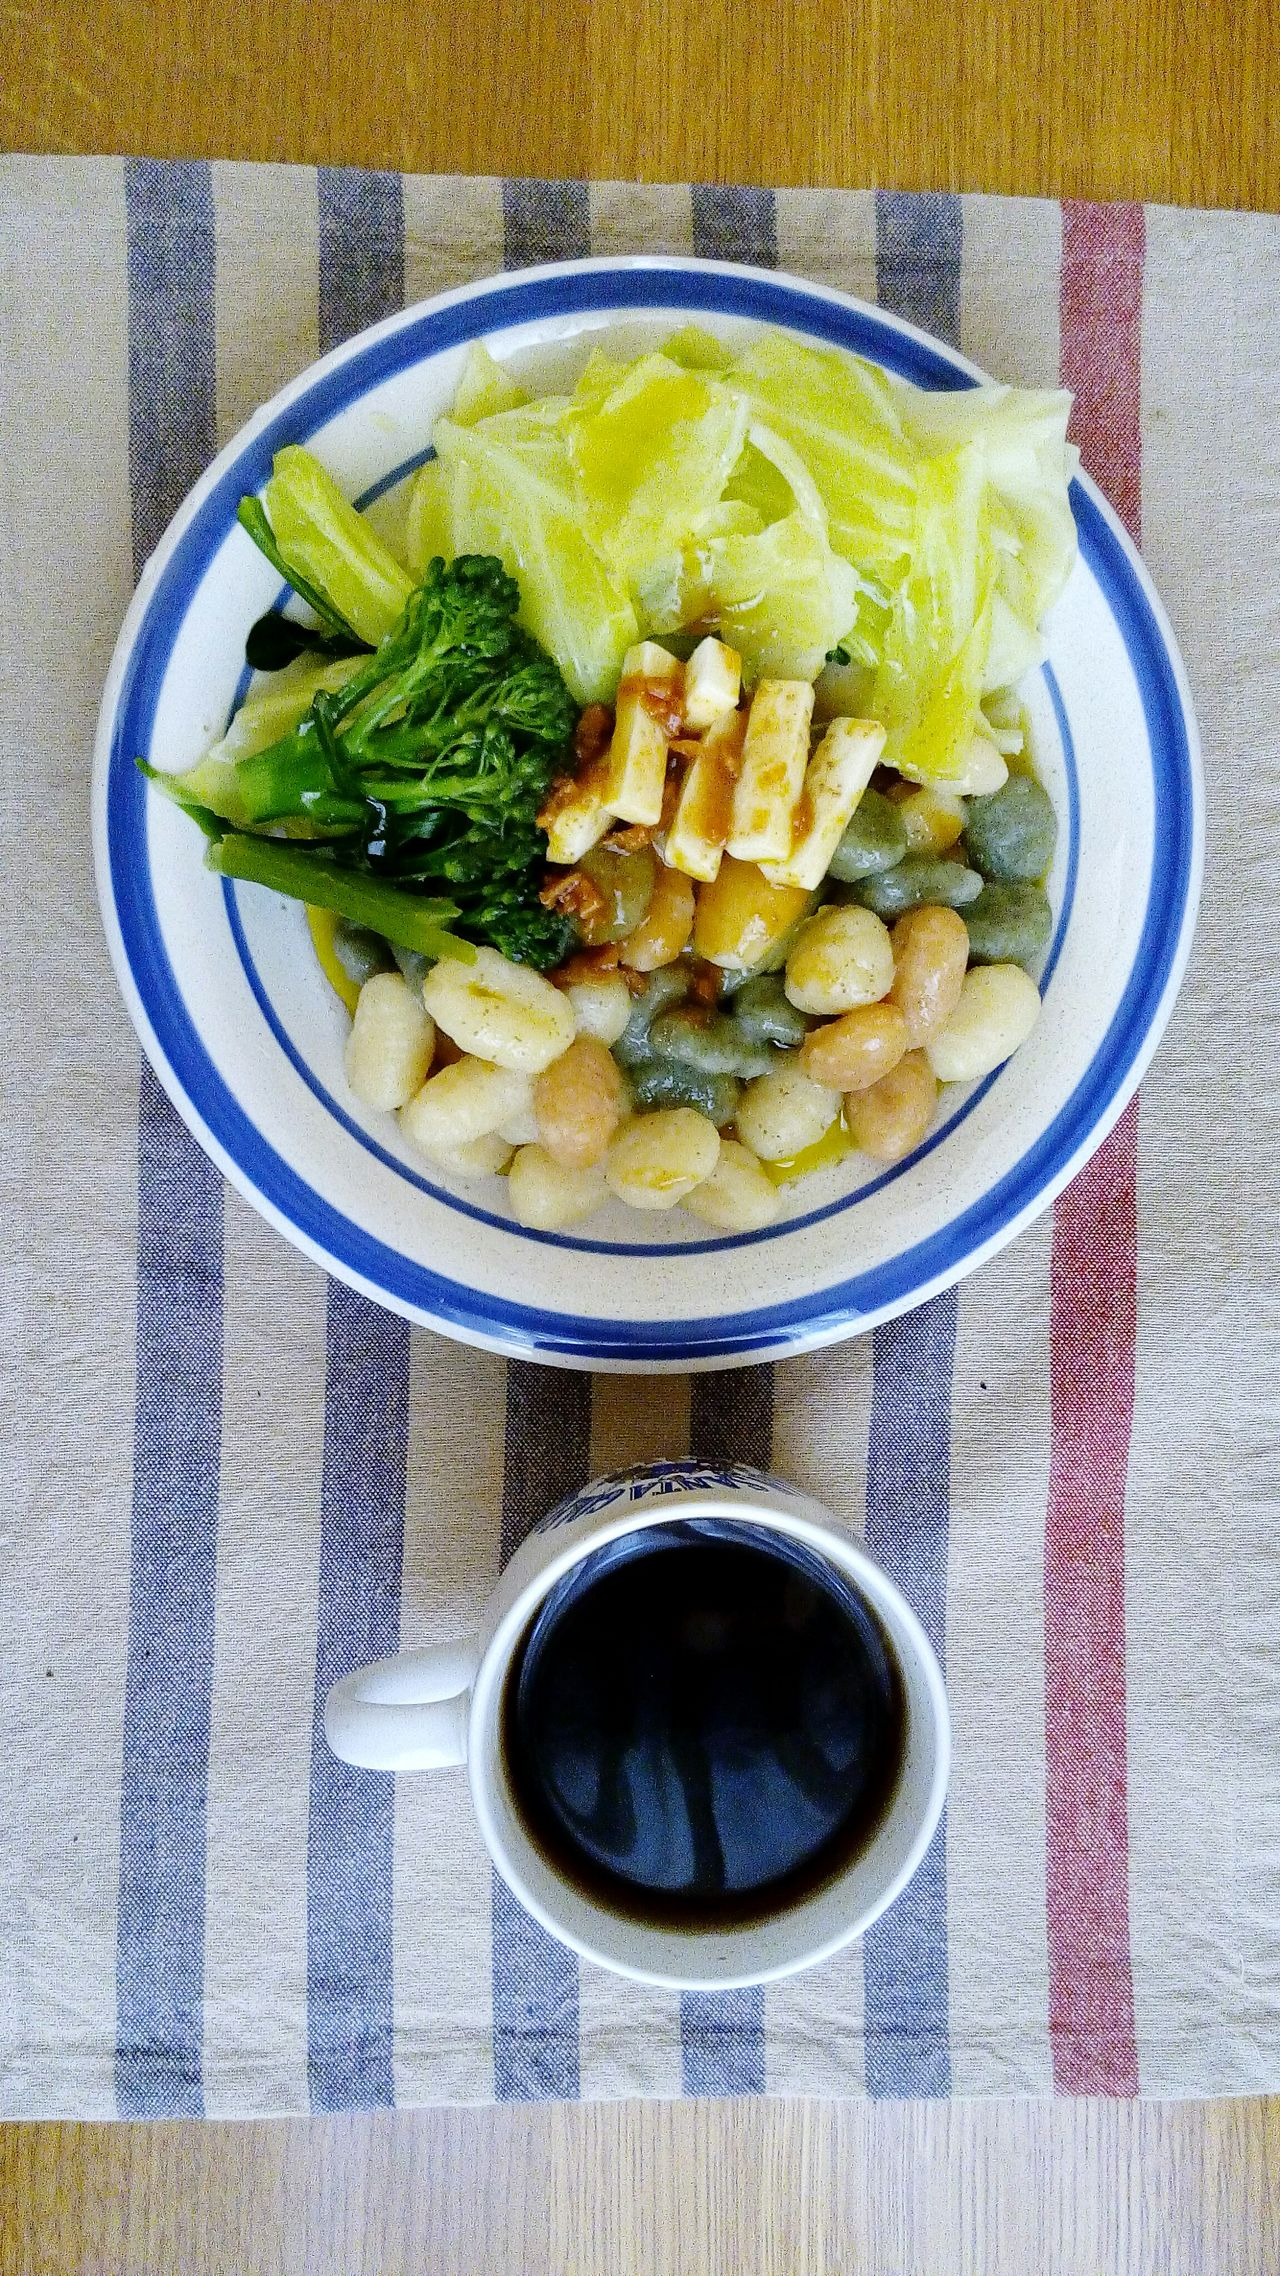 Gnocci Gnocchi Di Patate GNOCCHI🍴 Pasta Lunch Breakfast Lunch Time Food And Drink Food Table Japan Holiday Winter Tea Tea Time Plate Lunch Plate Vegetable Vegetables Potato Home Made